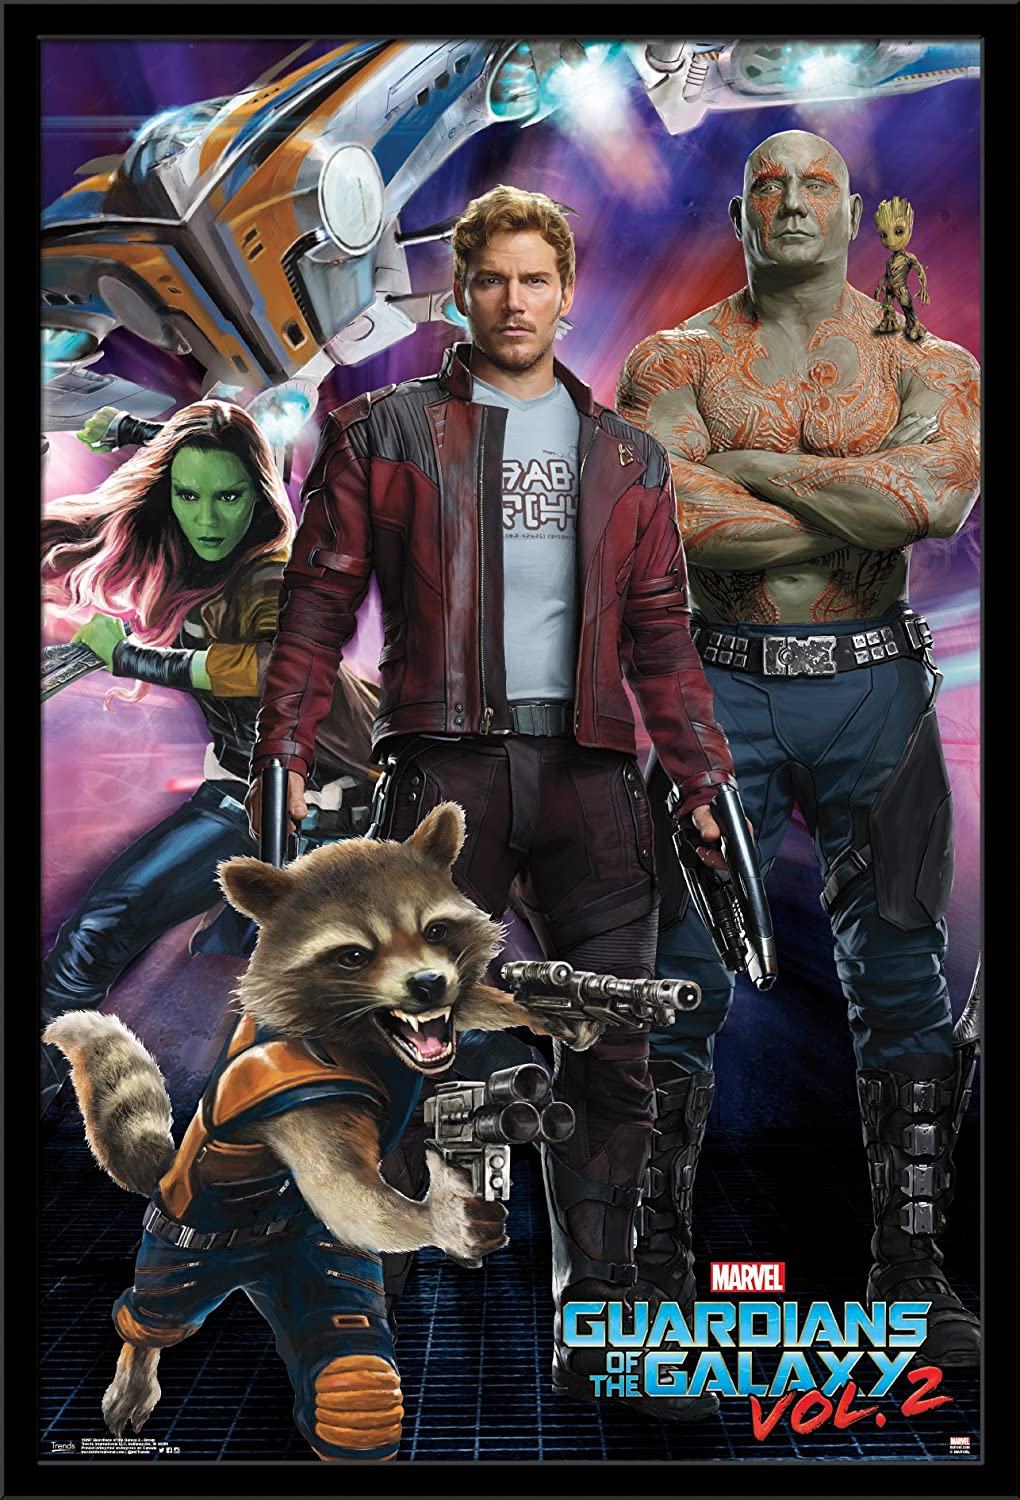 GUARDIANS OF THE GALAXY Movie PHOTO Print POSTER Textless Film Art Marvel 002